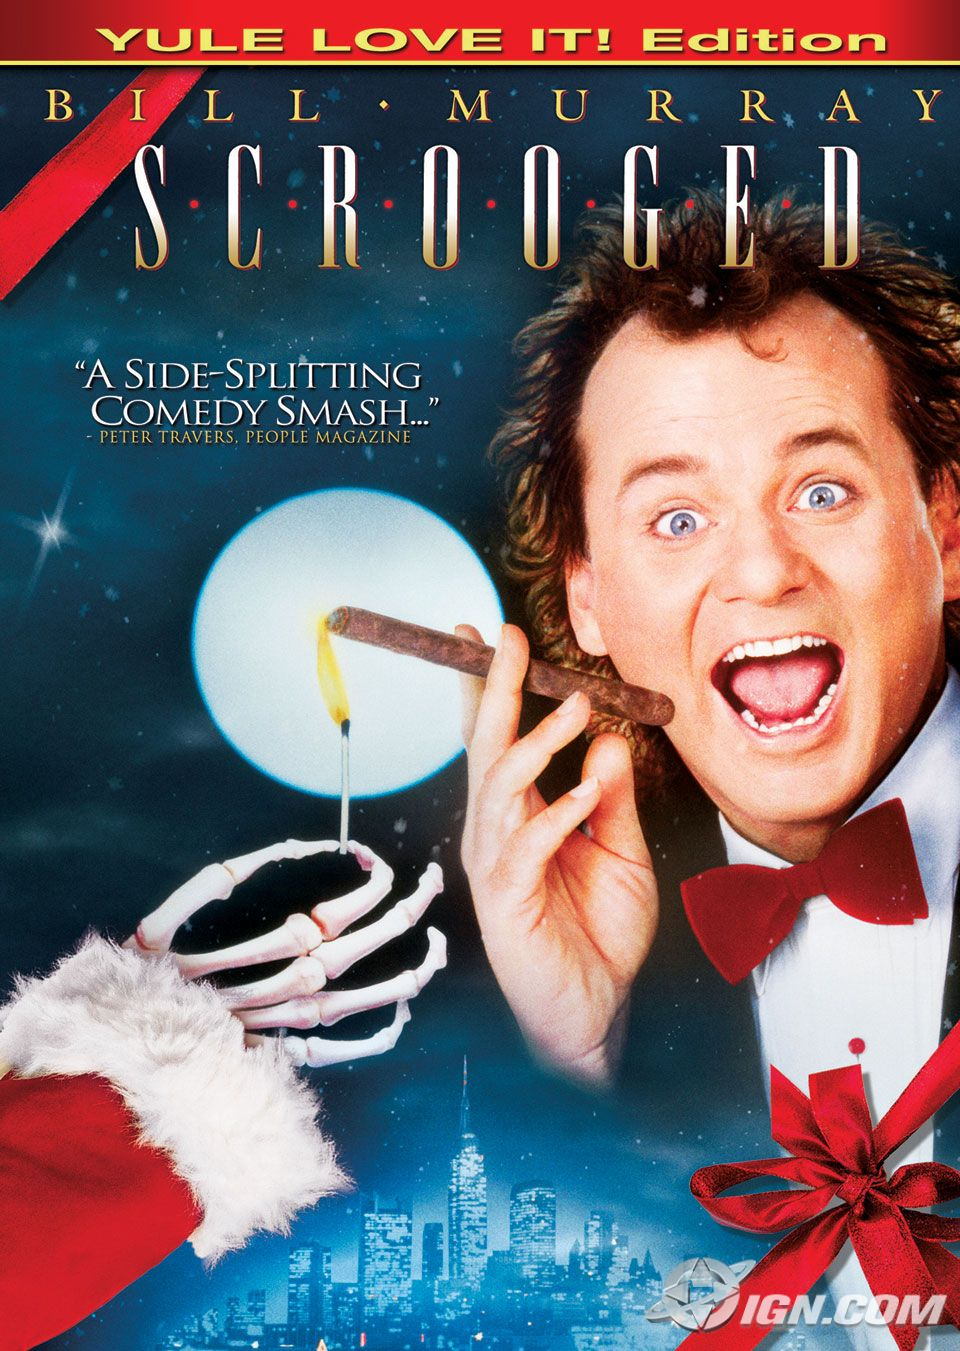 scrooged-yule-love-it-edition-20060927112119763